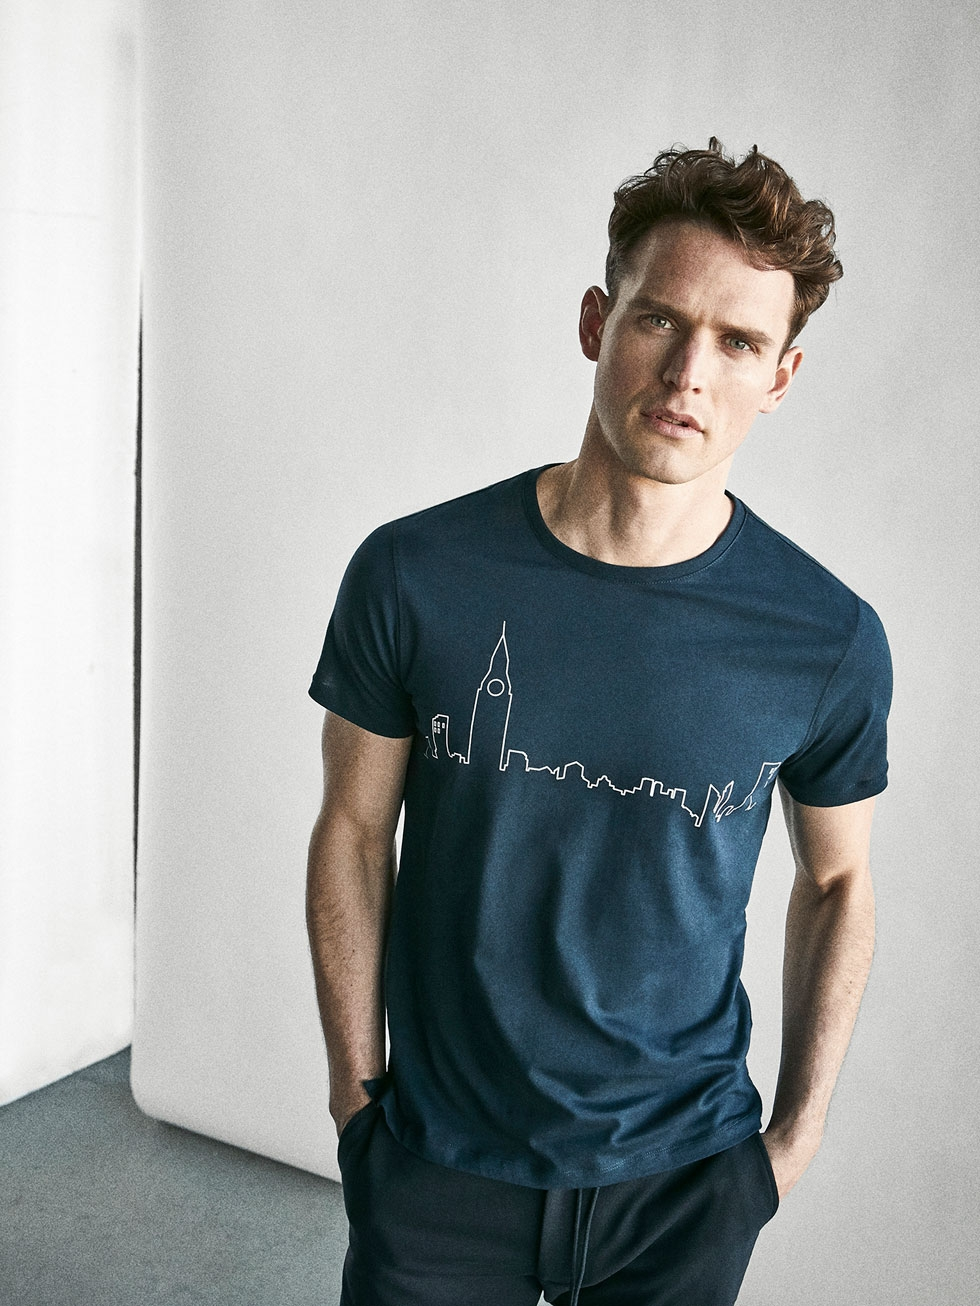 Massimo Dutti London Skyline Soft Tee £19.95